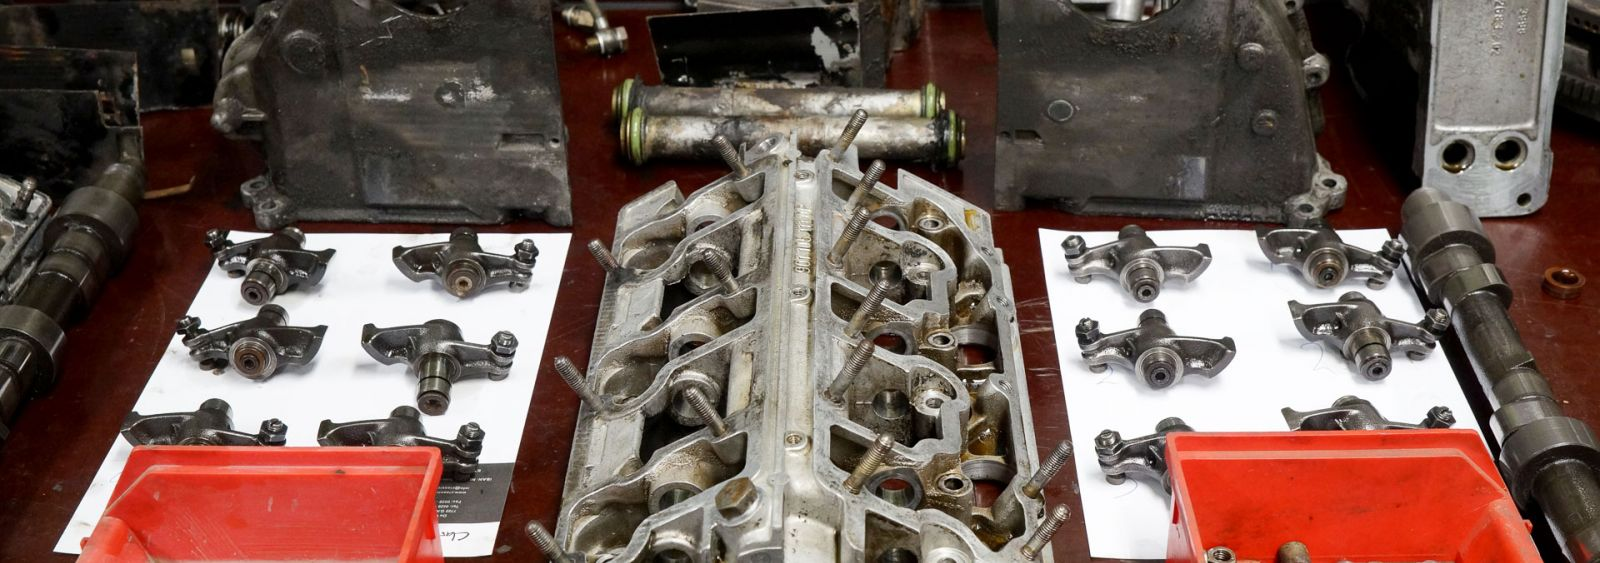 Porsche 911 2.4 S engine overhaul